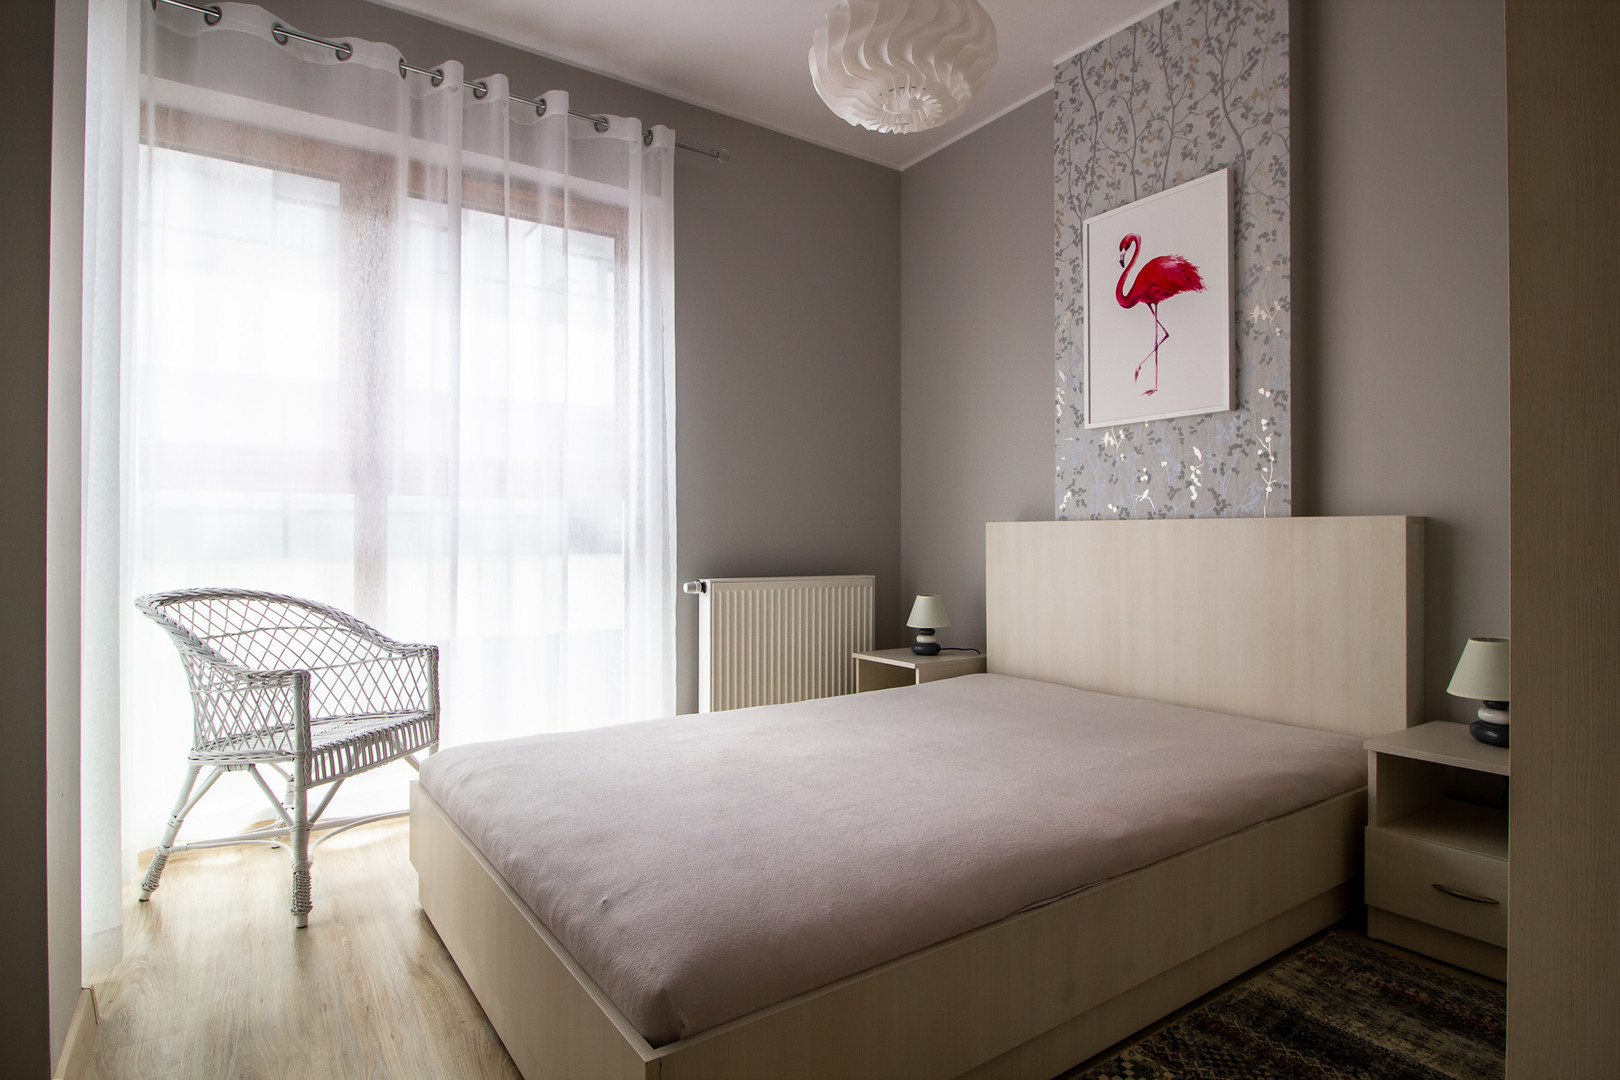 Poznan Wenecjanska flat for rent_6.jpg